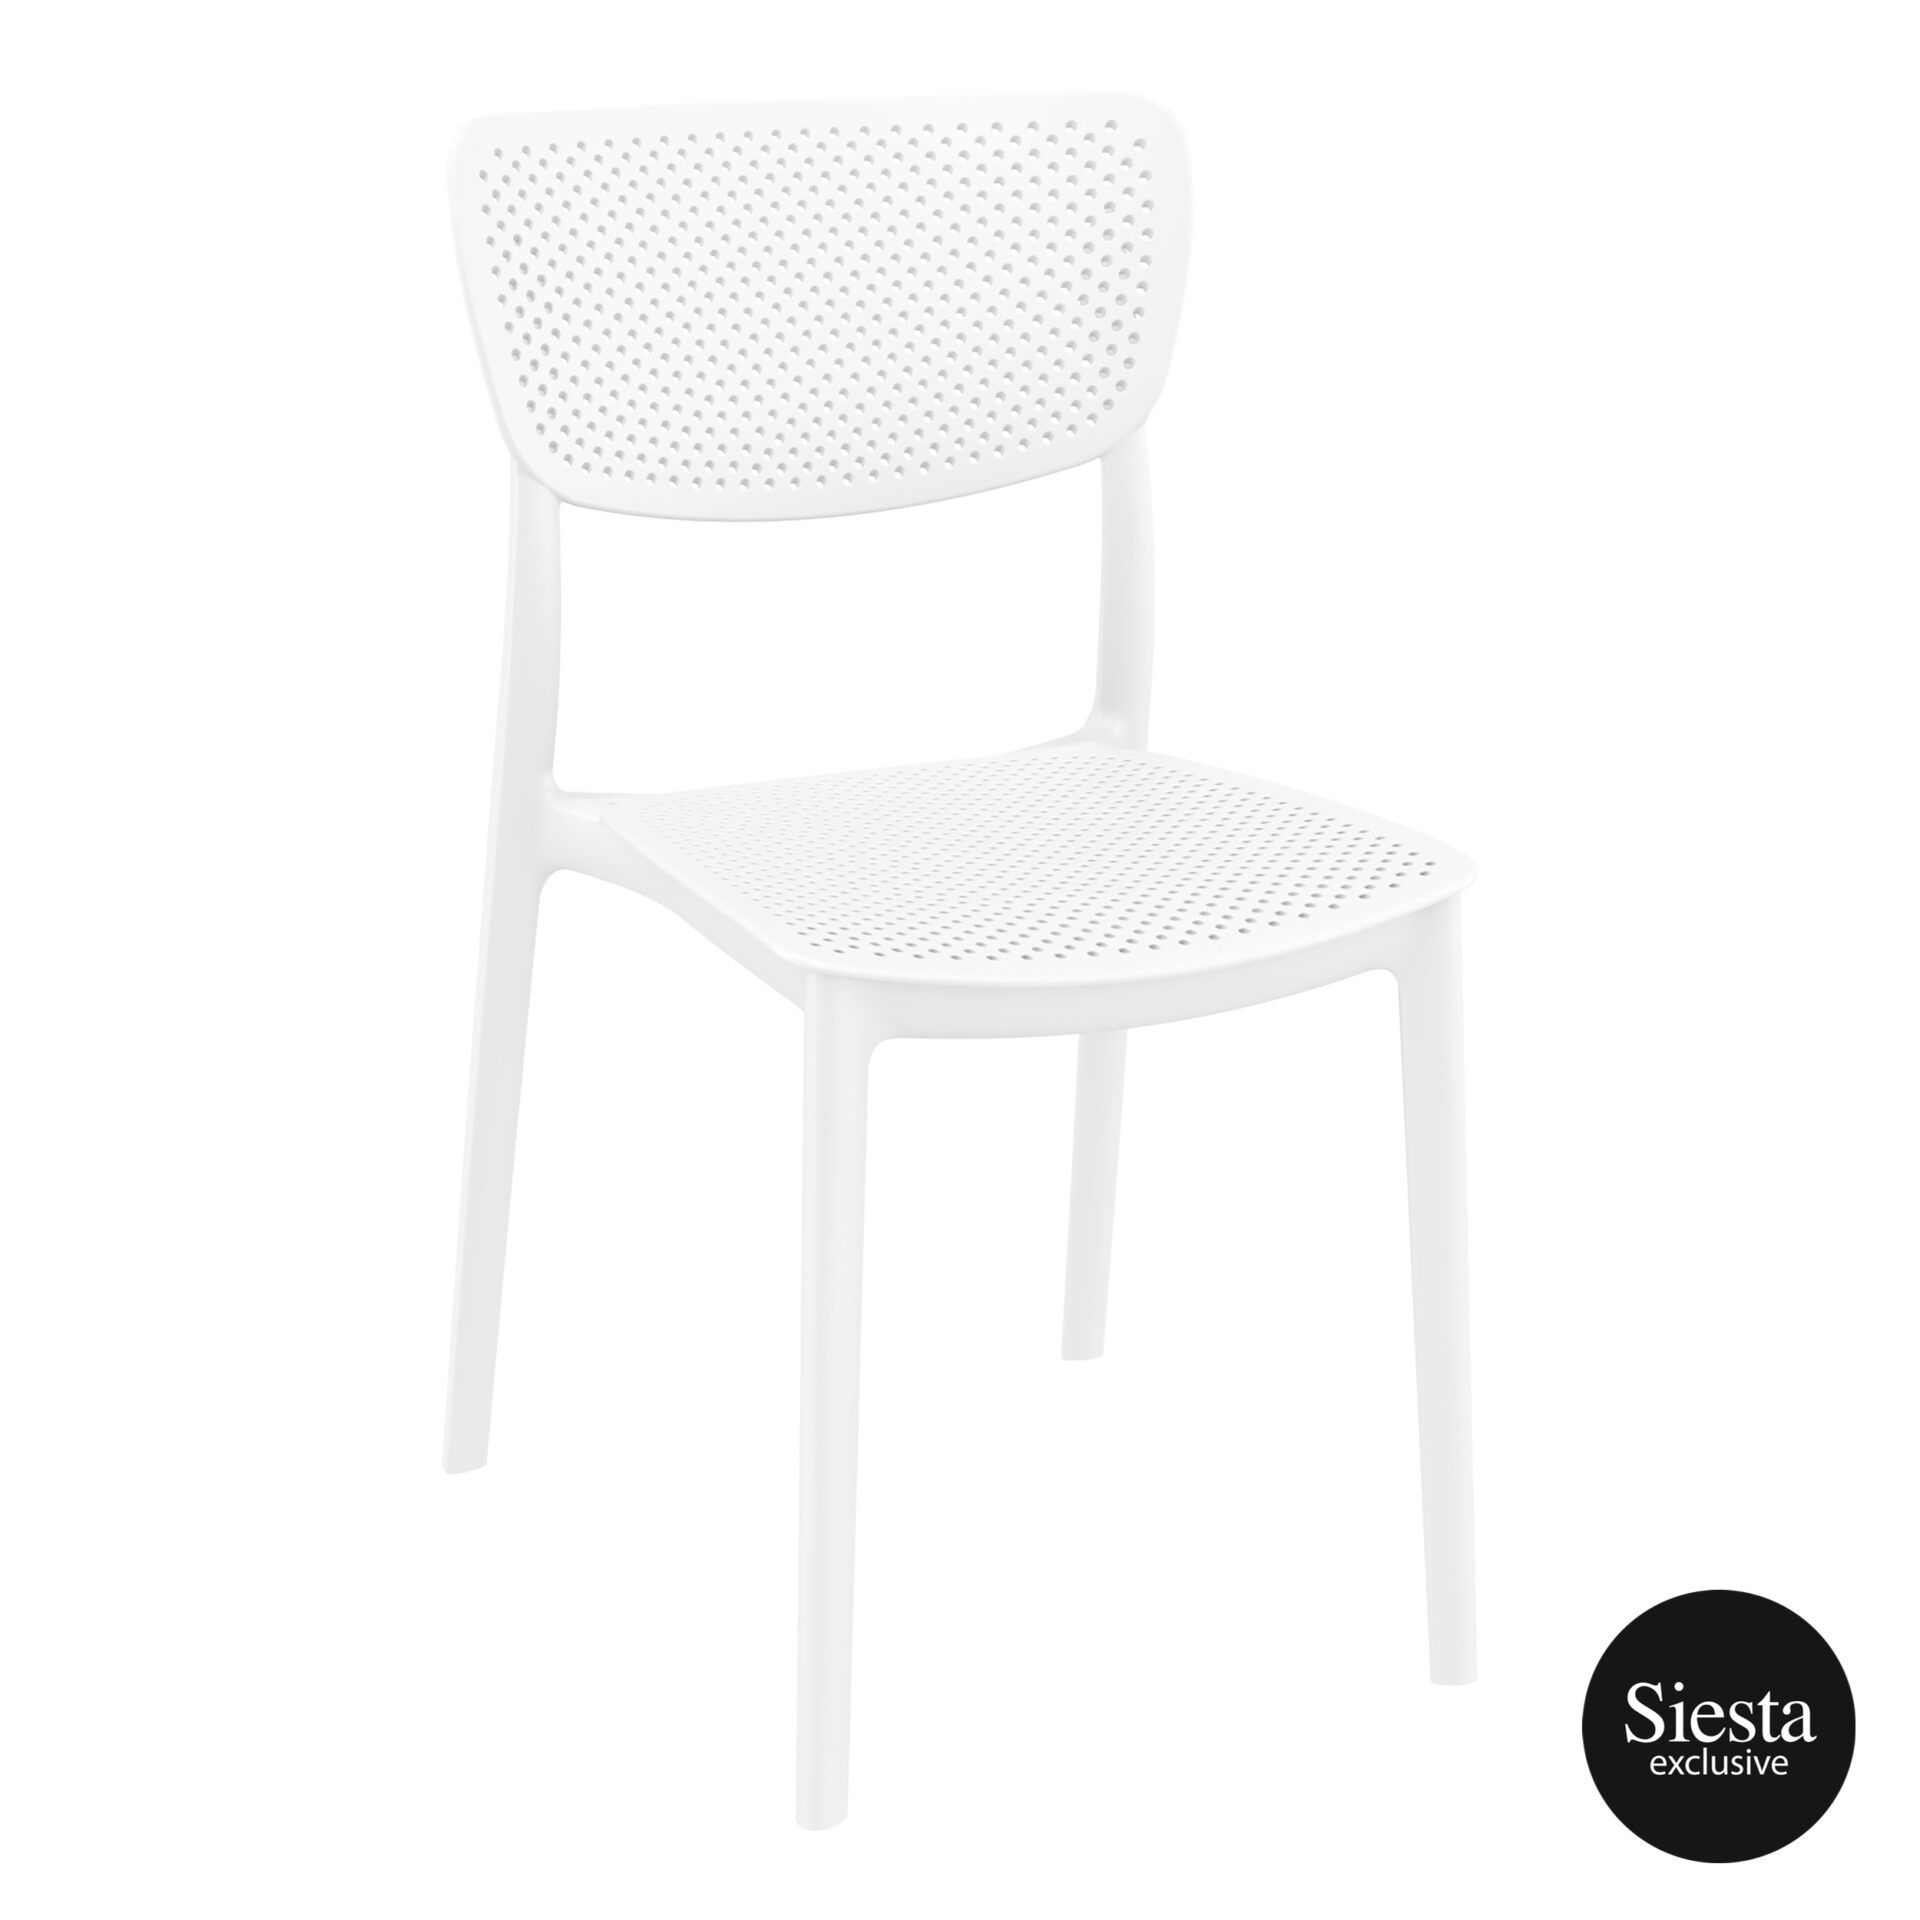 polypropylene hospitality seating lucy chair white front side 1